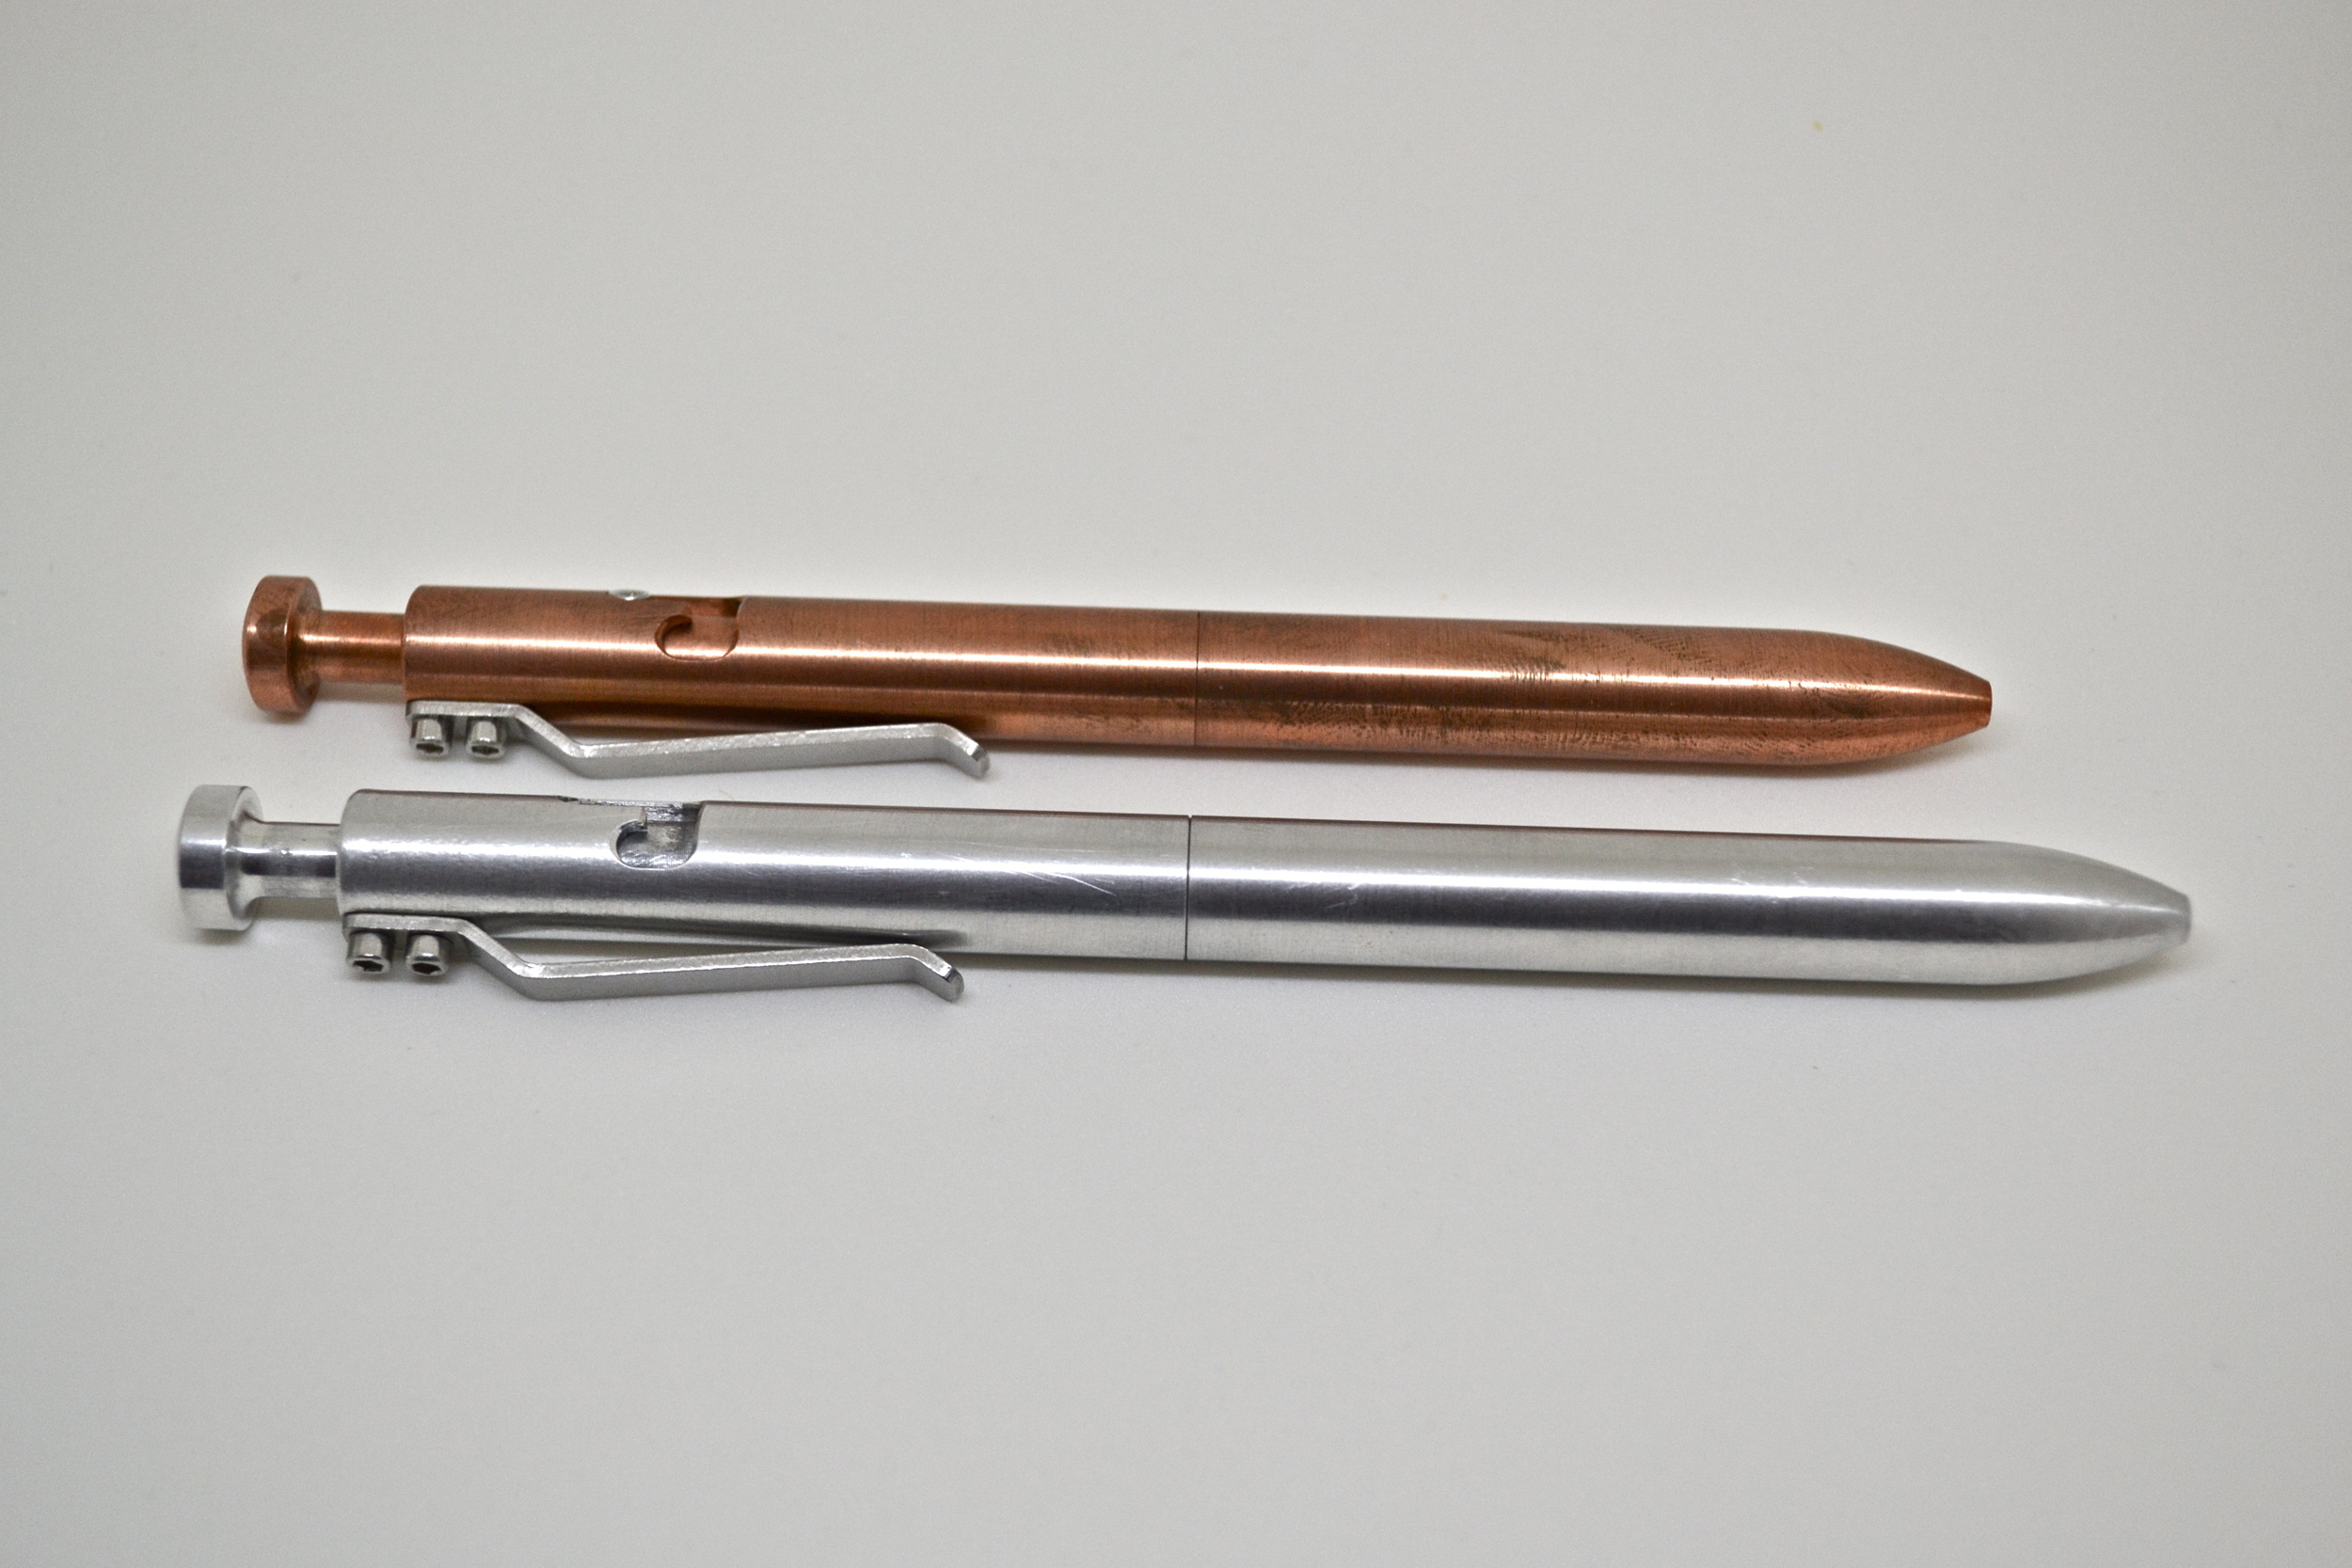 Aluminum G2 Bolt vs Copper Standard Bolt for Size Comparison